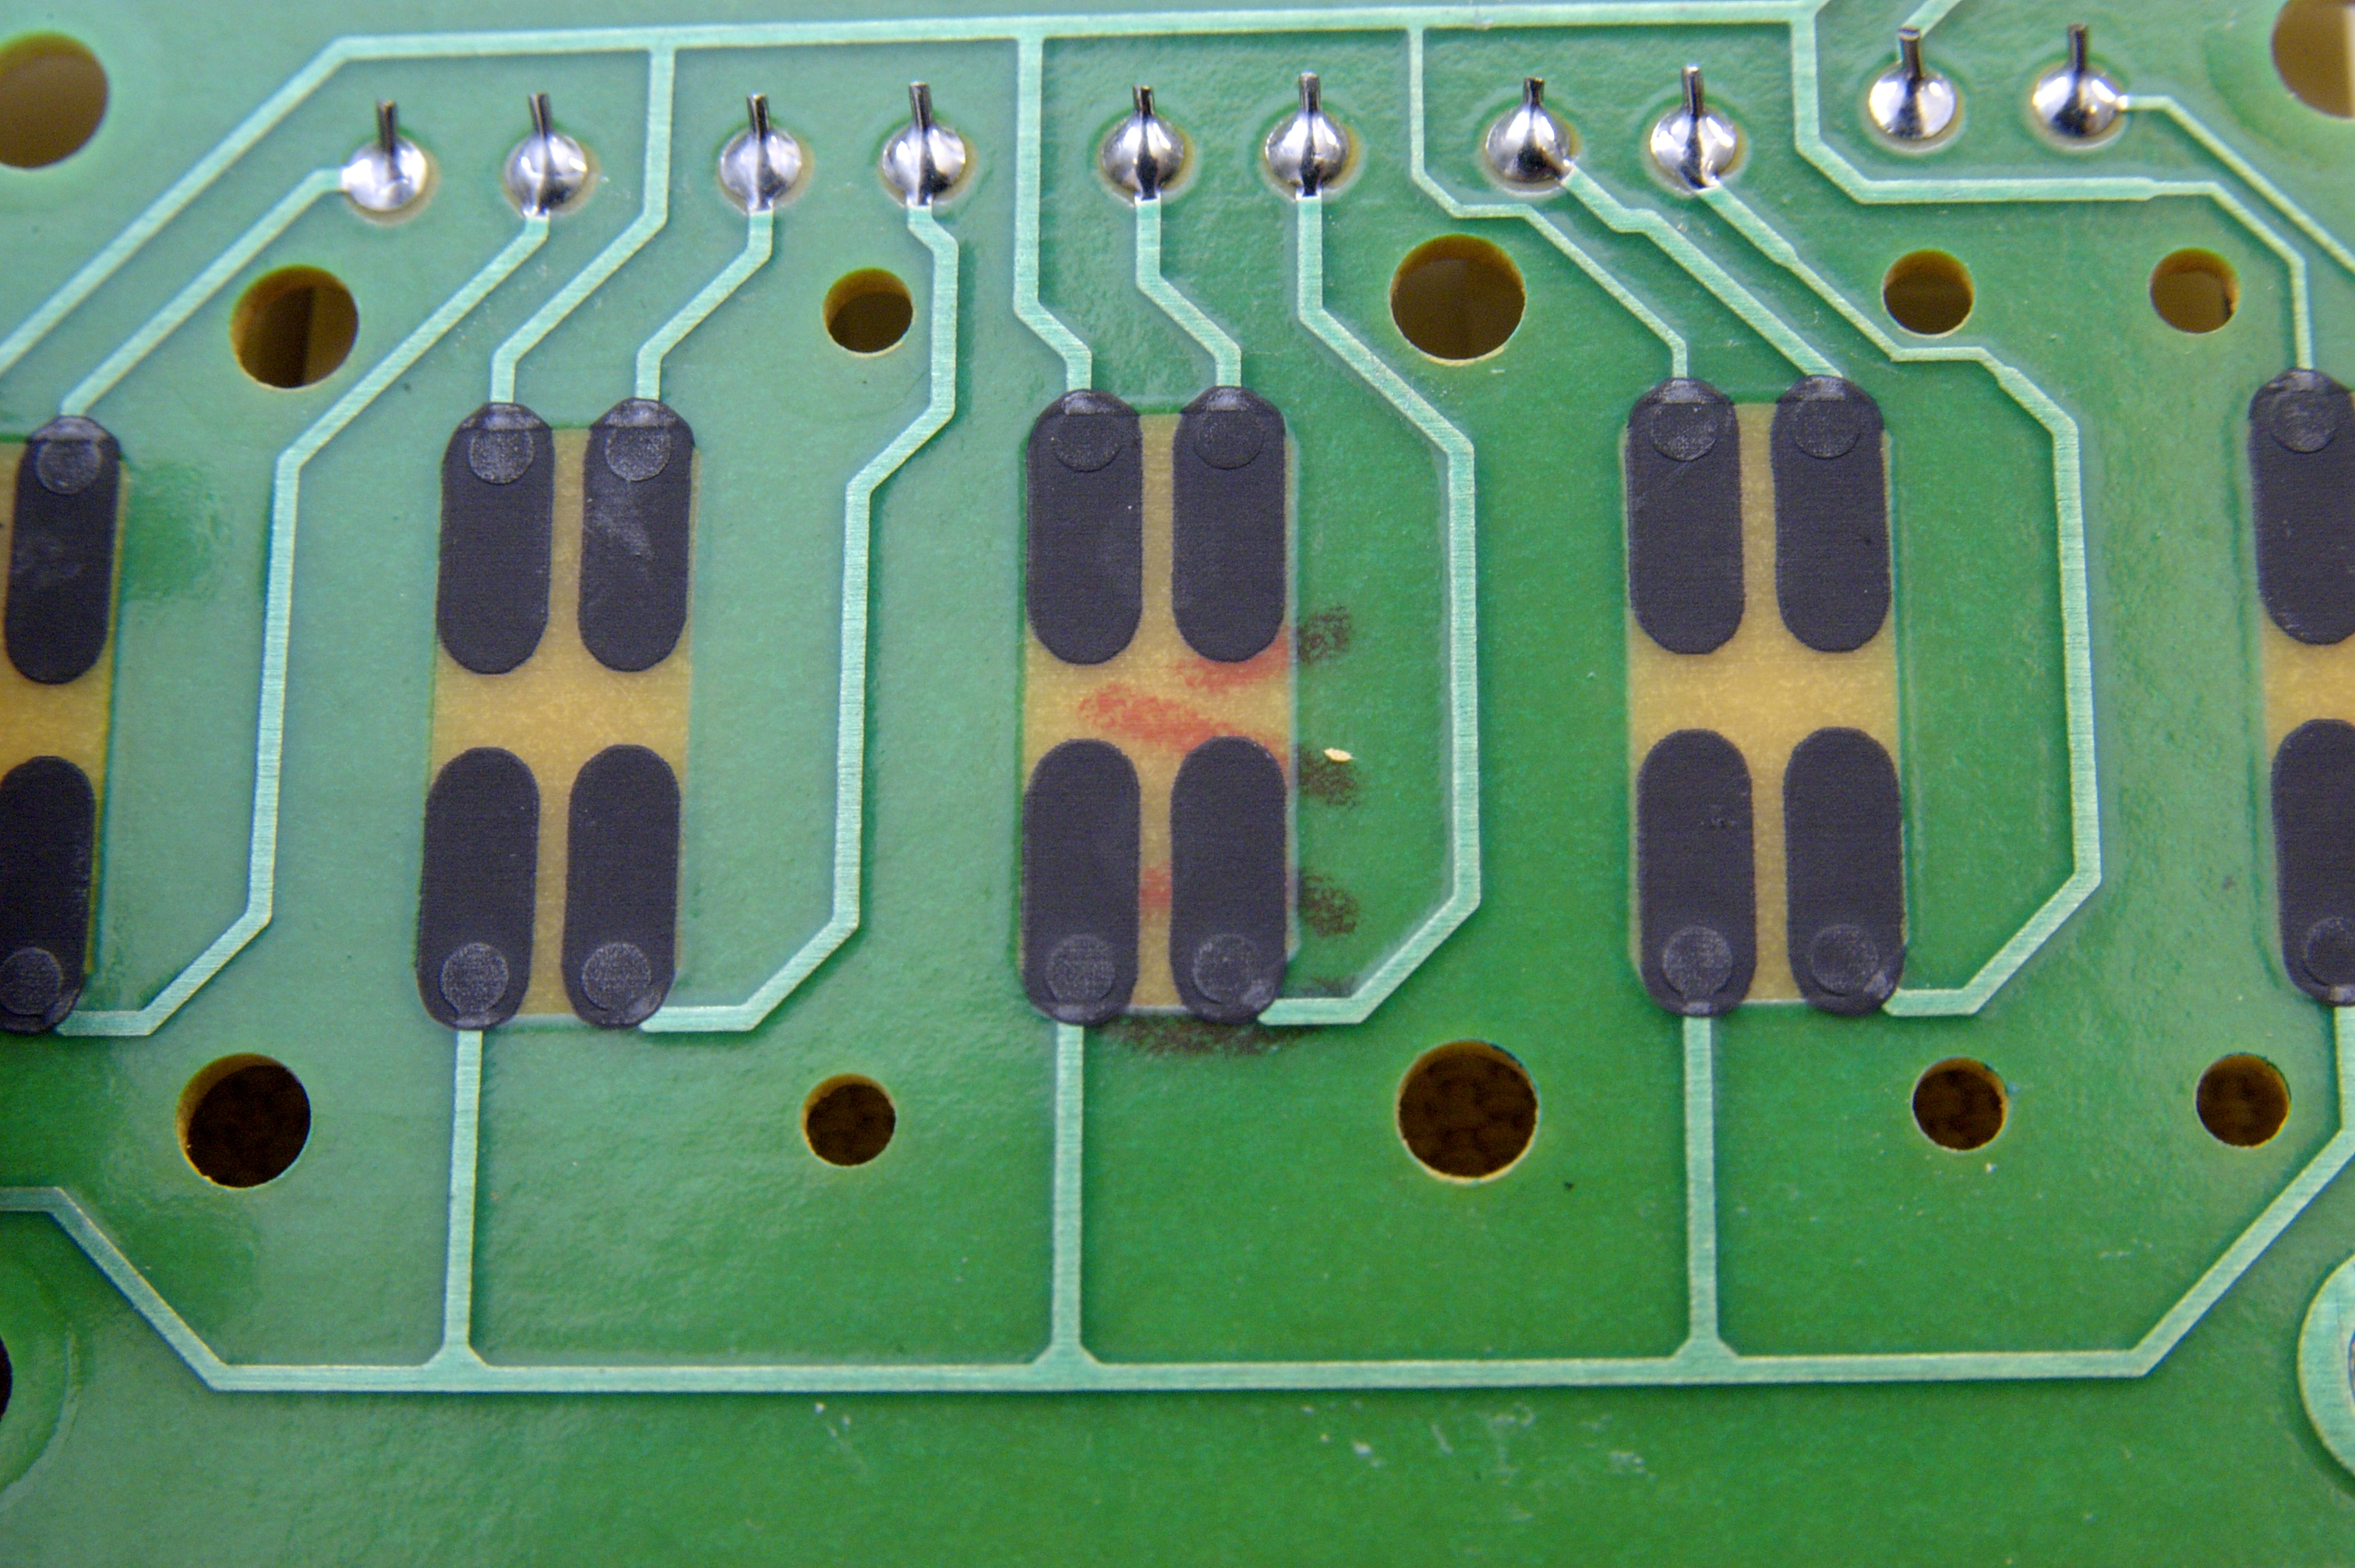 DSC_9349.jpg - A close up of the circuit board contacts